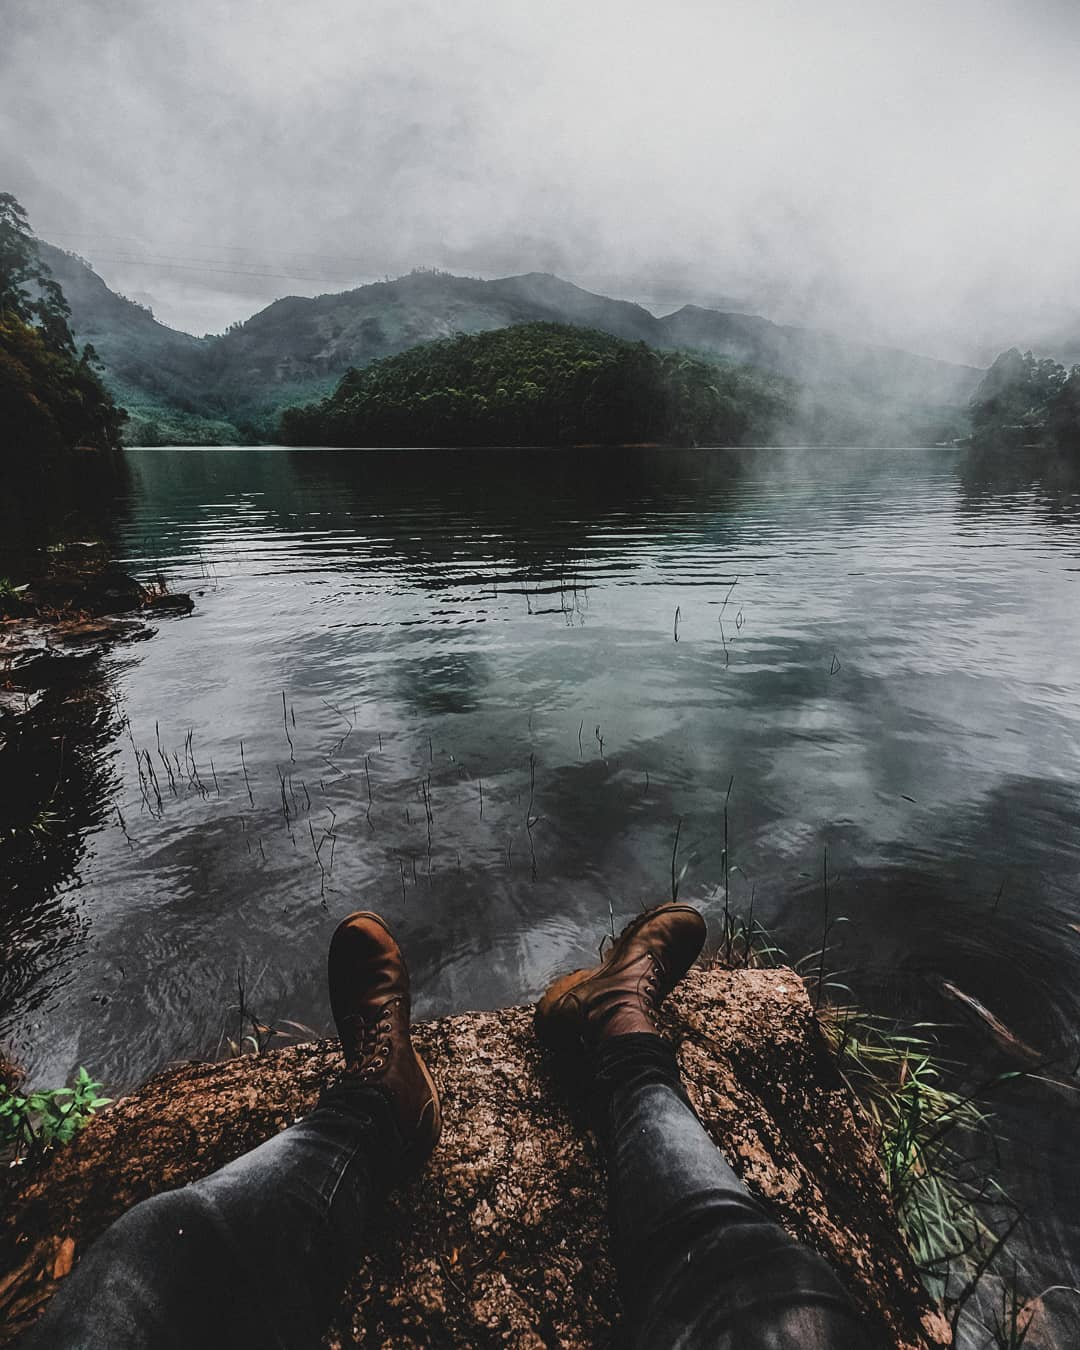 Boots in the Lake